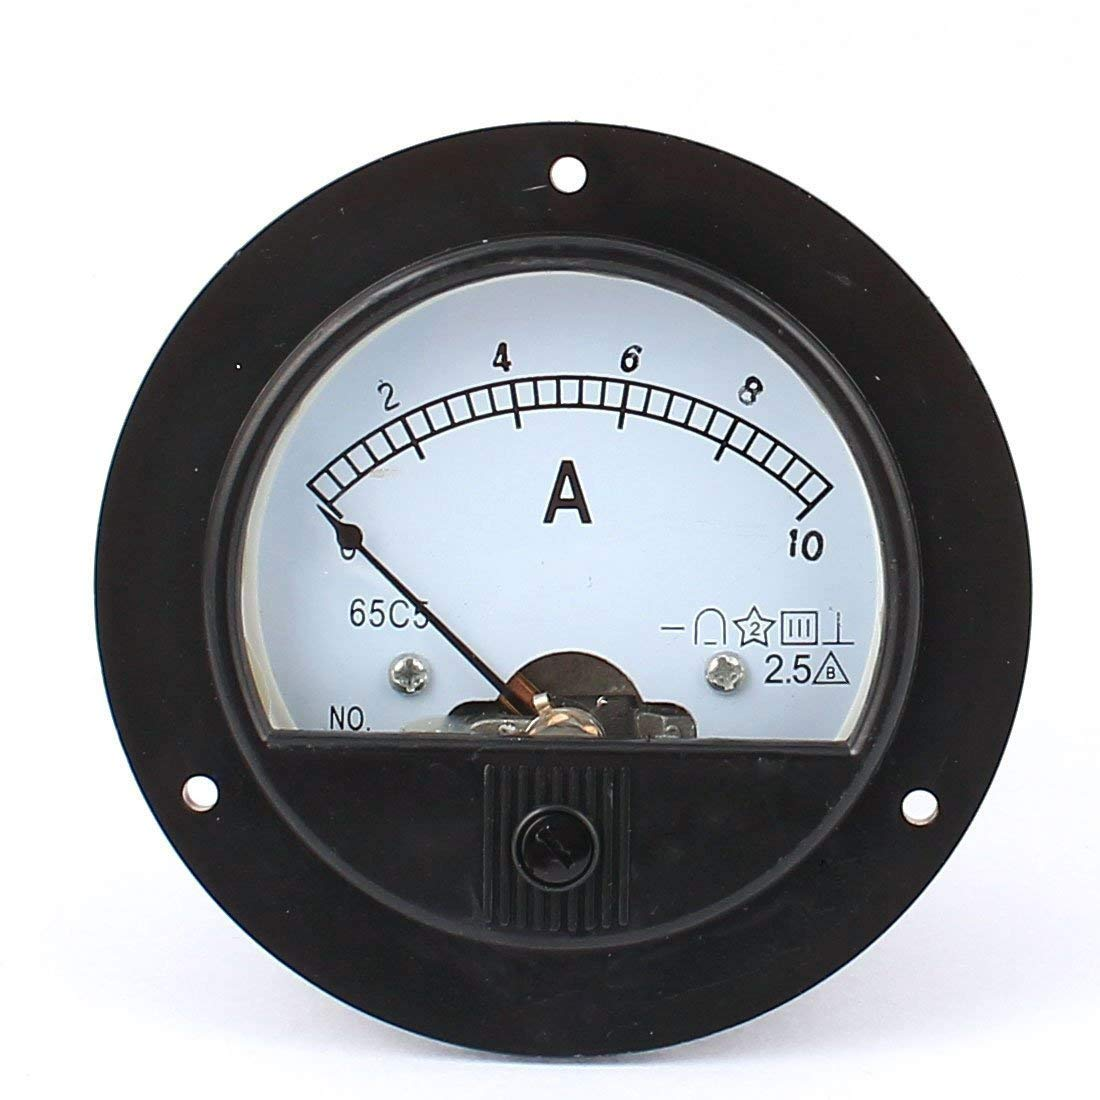 YXQ 0-10A Analog Current Panel 65C5-A Amp Ammeter Gauge Meter 2.5 Accuracy for Auto Circuit Measurement Tester by YXQ